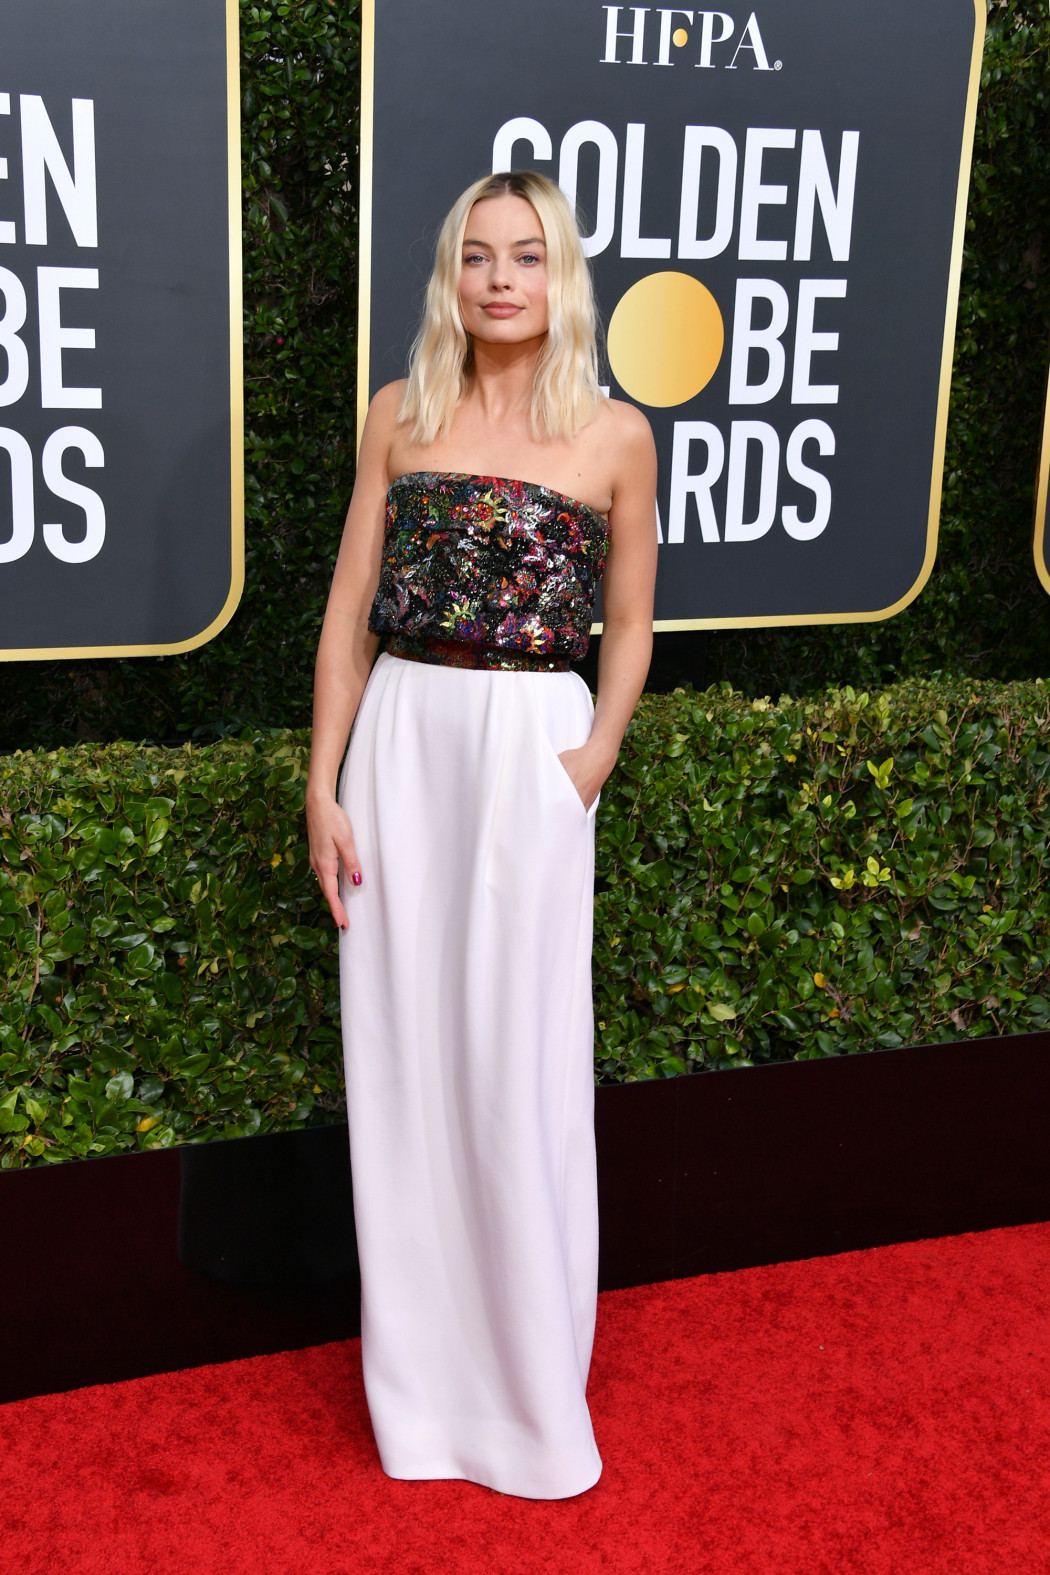 Golden Globes 2020 : les plus beaux looks du tapis rouge - 7